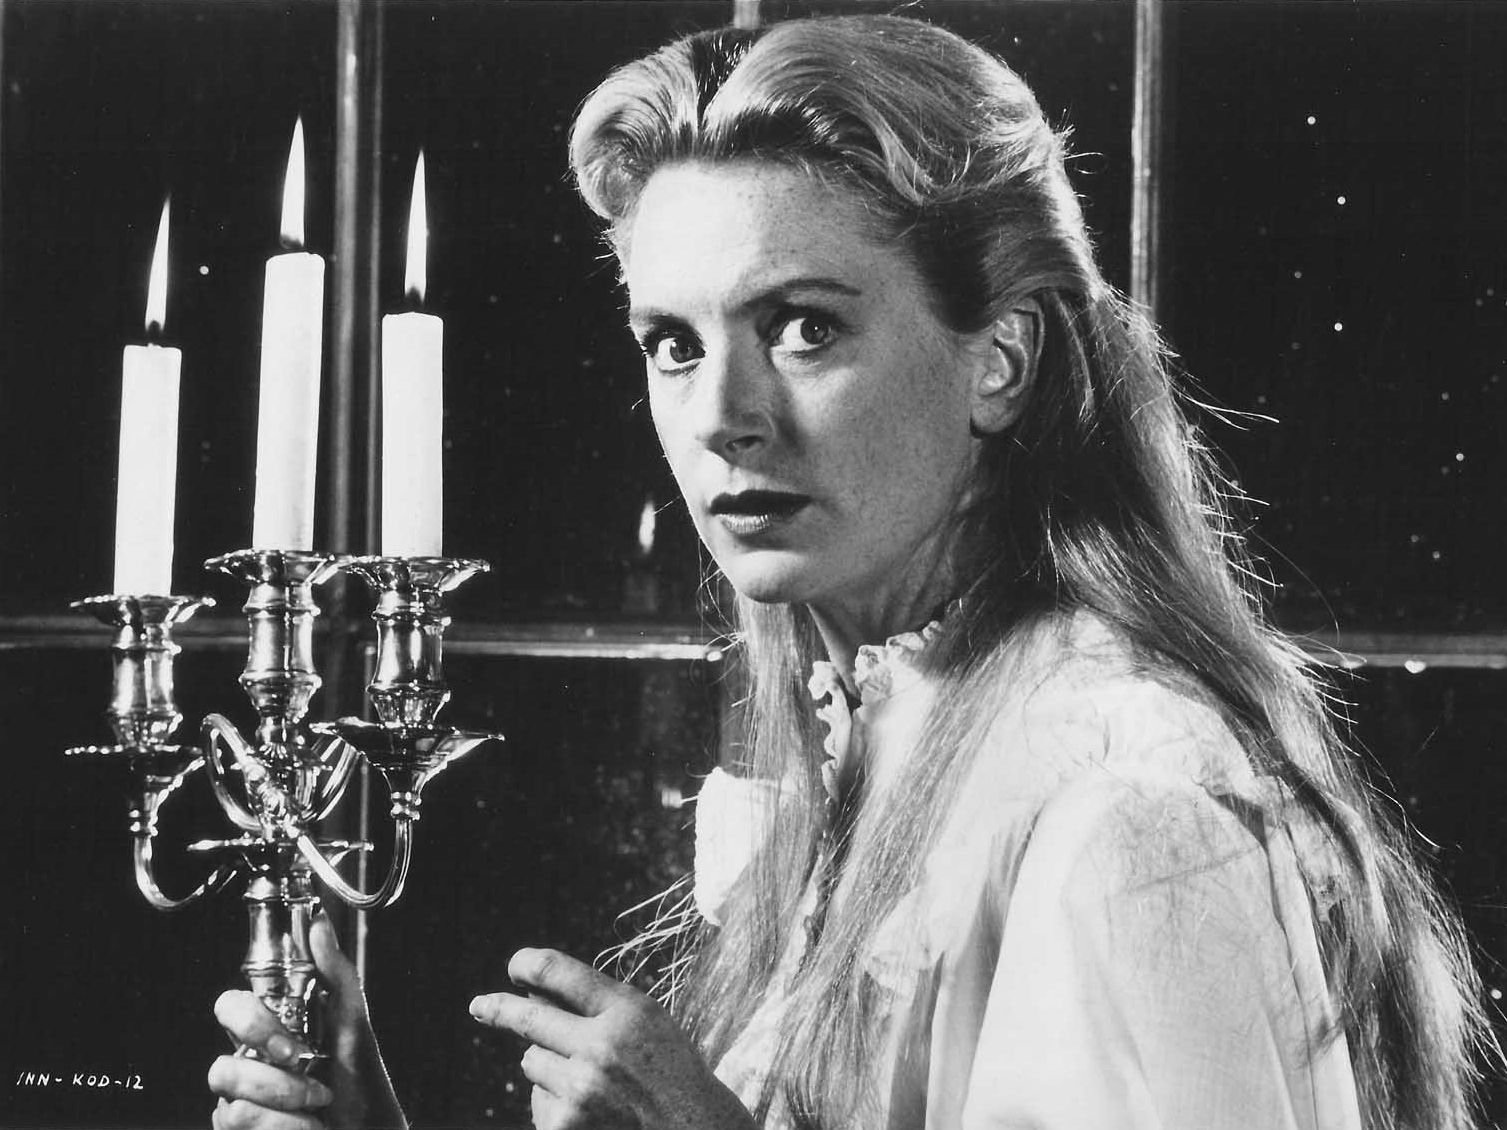 Deborah Kerr as the governess Miss Giddens in The Innocents (1961)